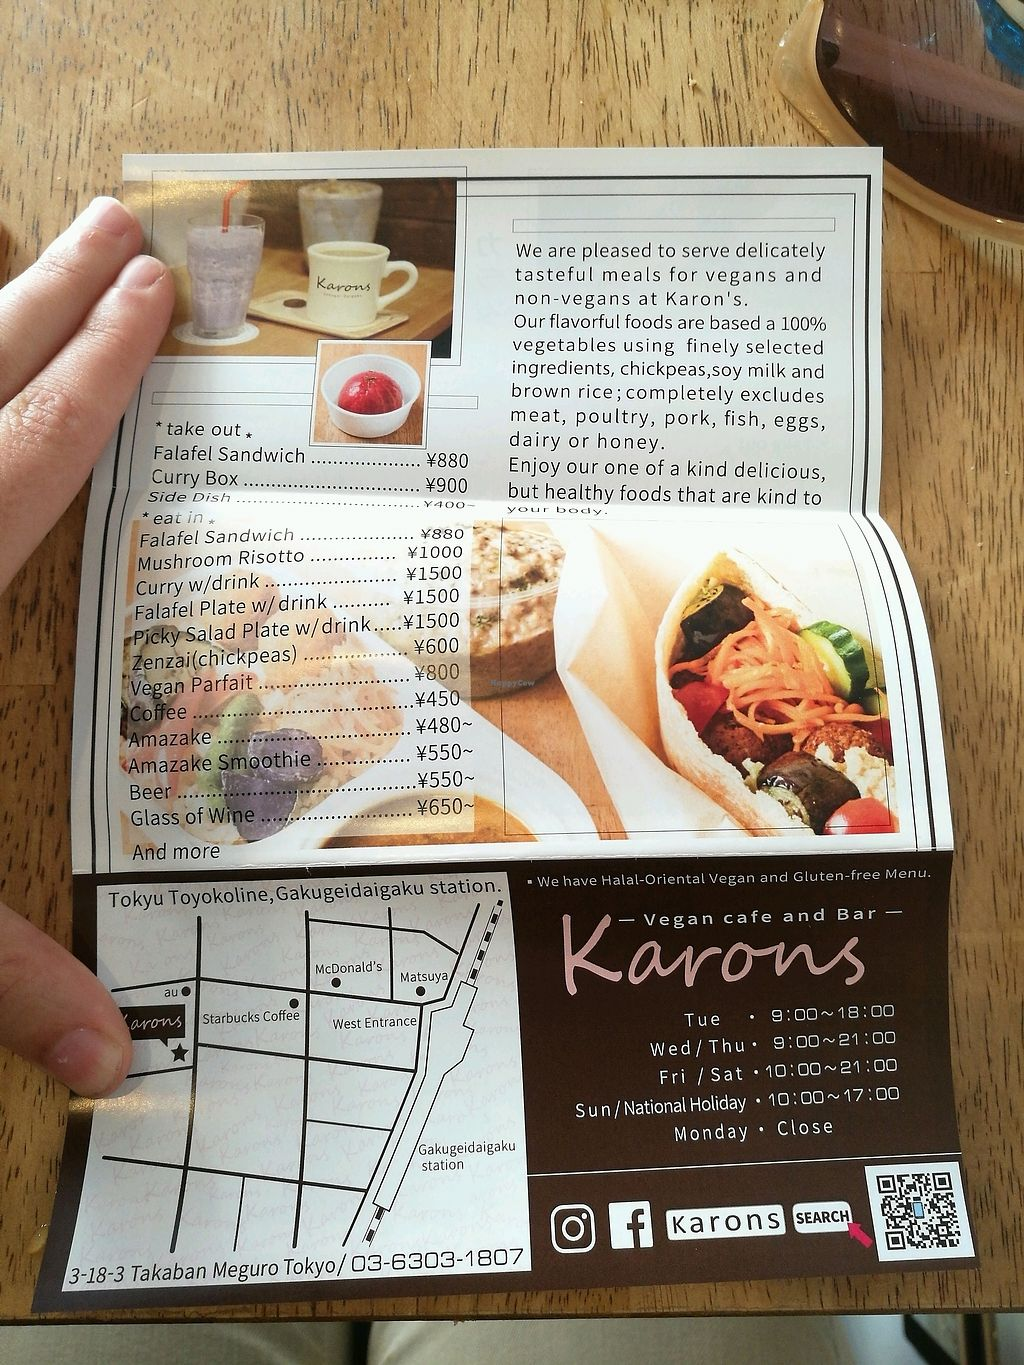 """Photo of Vegan Cafe and Bar Karons  by <a href=""""/members/profile/RosieHernon"""">RosieHernon</a> <br/>example menu and opening times <br/> October 27, 2017  - <a href='/contact/abuse/image/74323/319165'>Report</a>"""